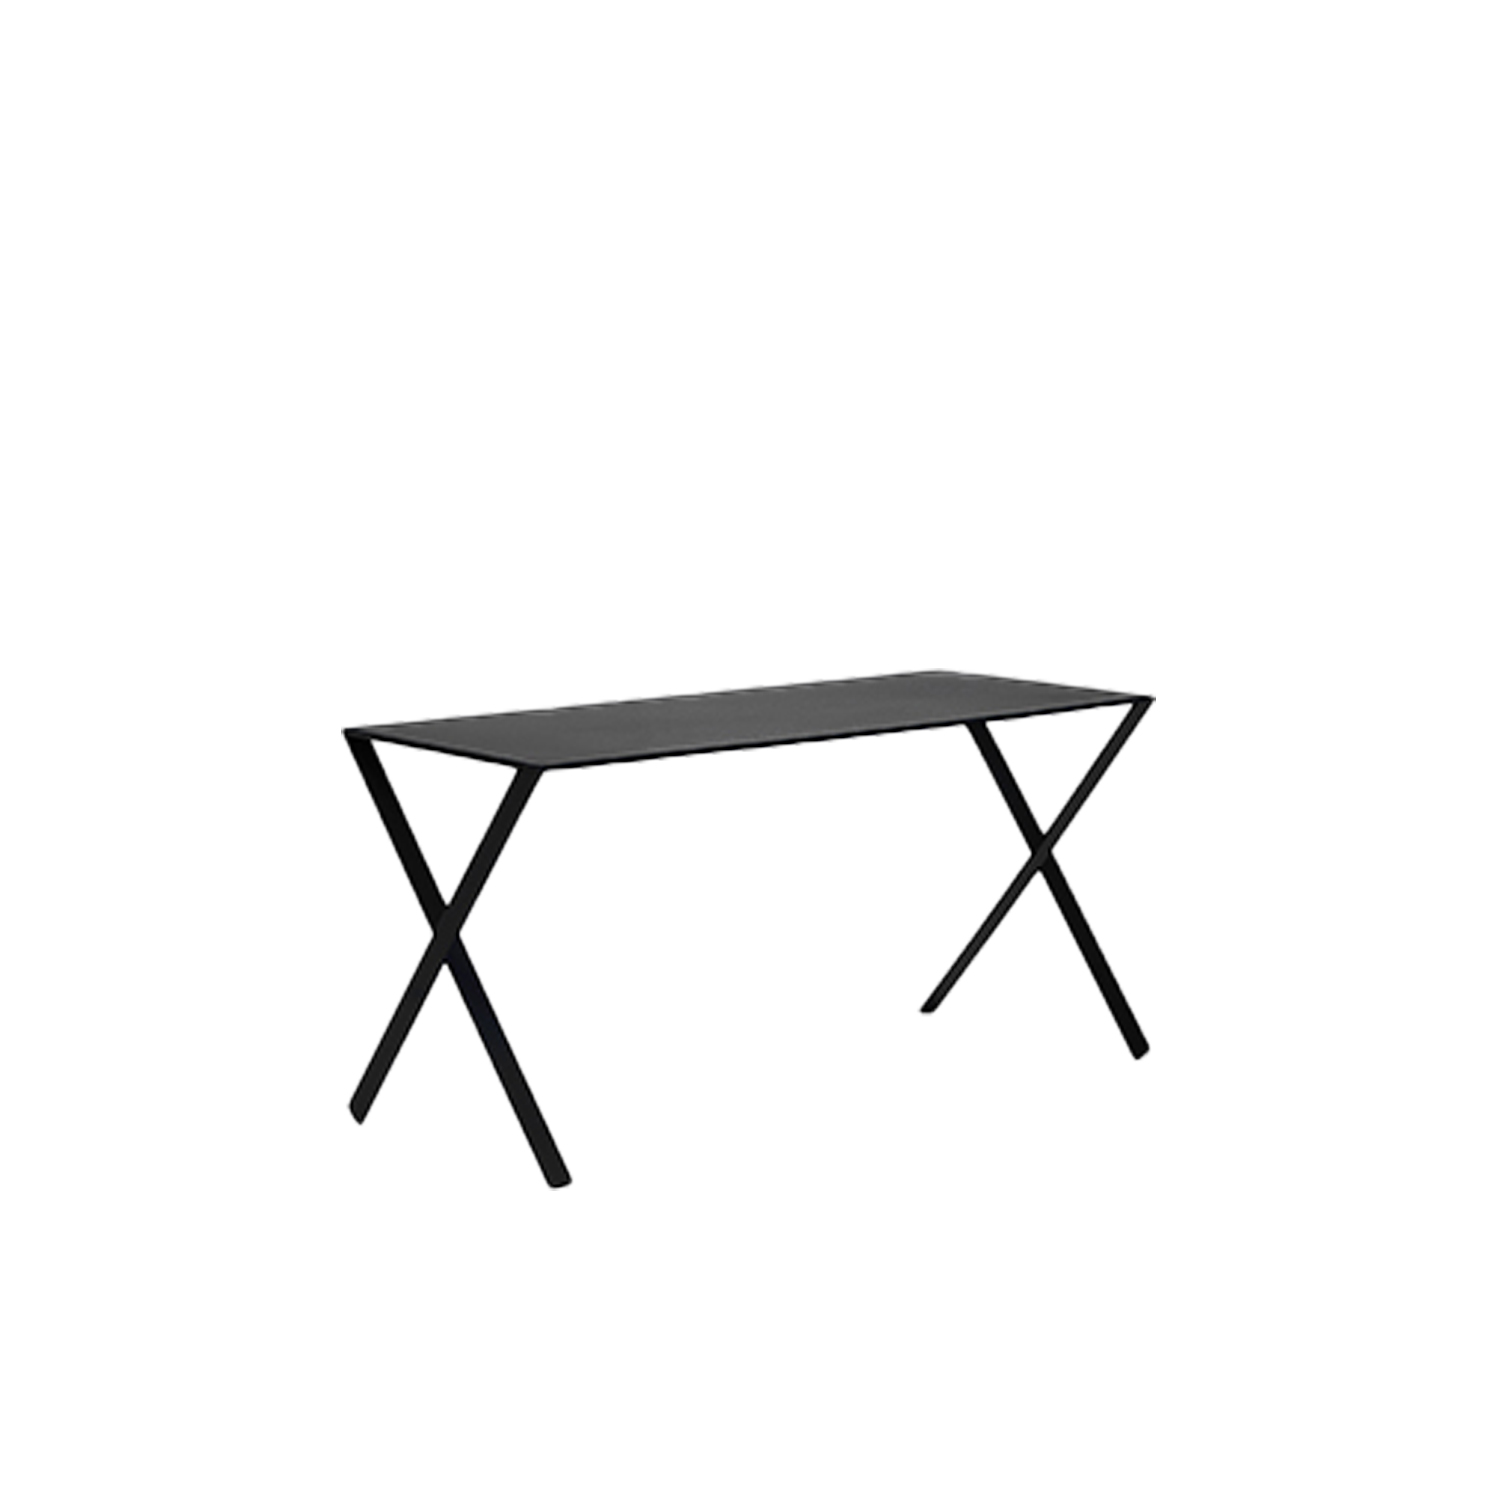 Bambi Table - The Bambi table, which can also be used as a desk, was designed by Nendo. Completely matte lacquered in the colours white, anthracite and mud, the table is composed of a top made of folded laser-cut aluminium plate with a metal support base and legs in metal extrusion.  | Matter of Stuff